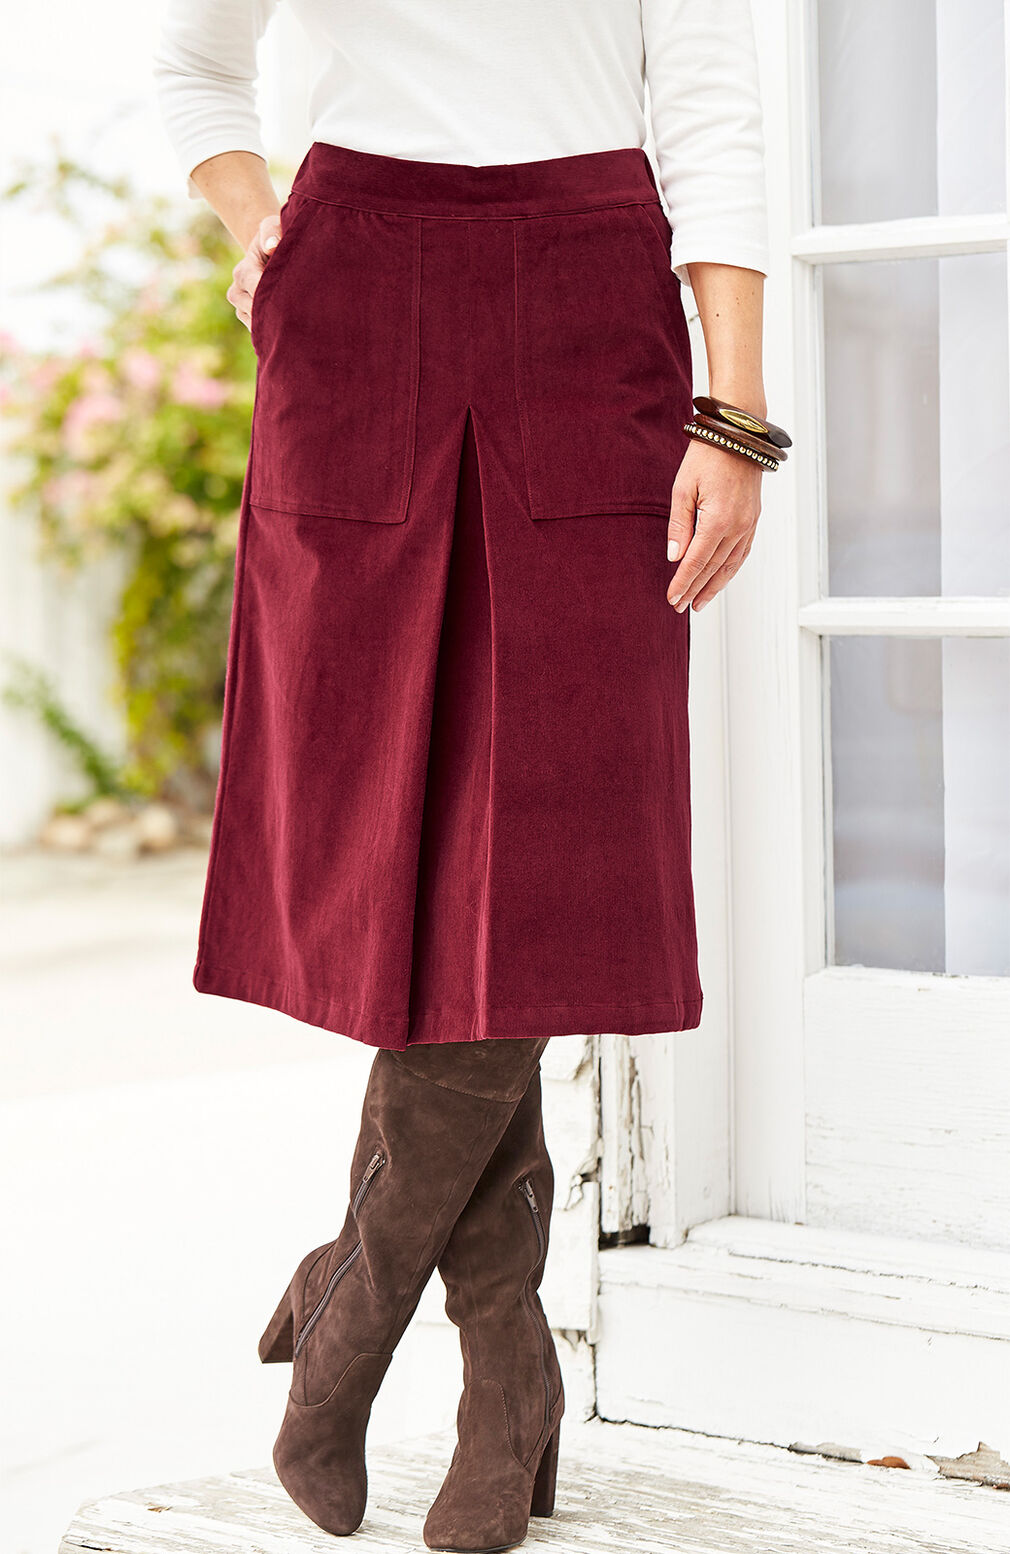 Ready For The Season | Pull-on Stretch Cord Skirt | By Cotton Traders